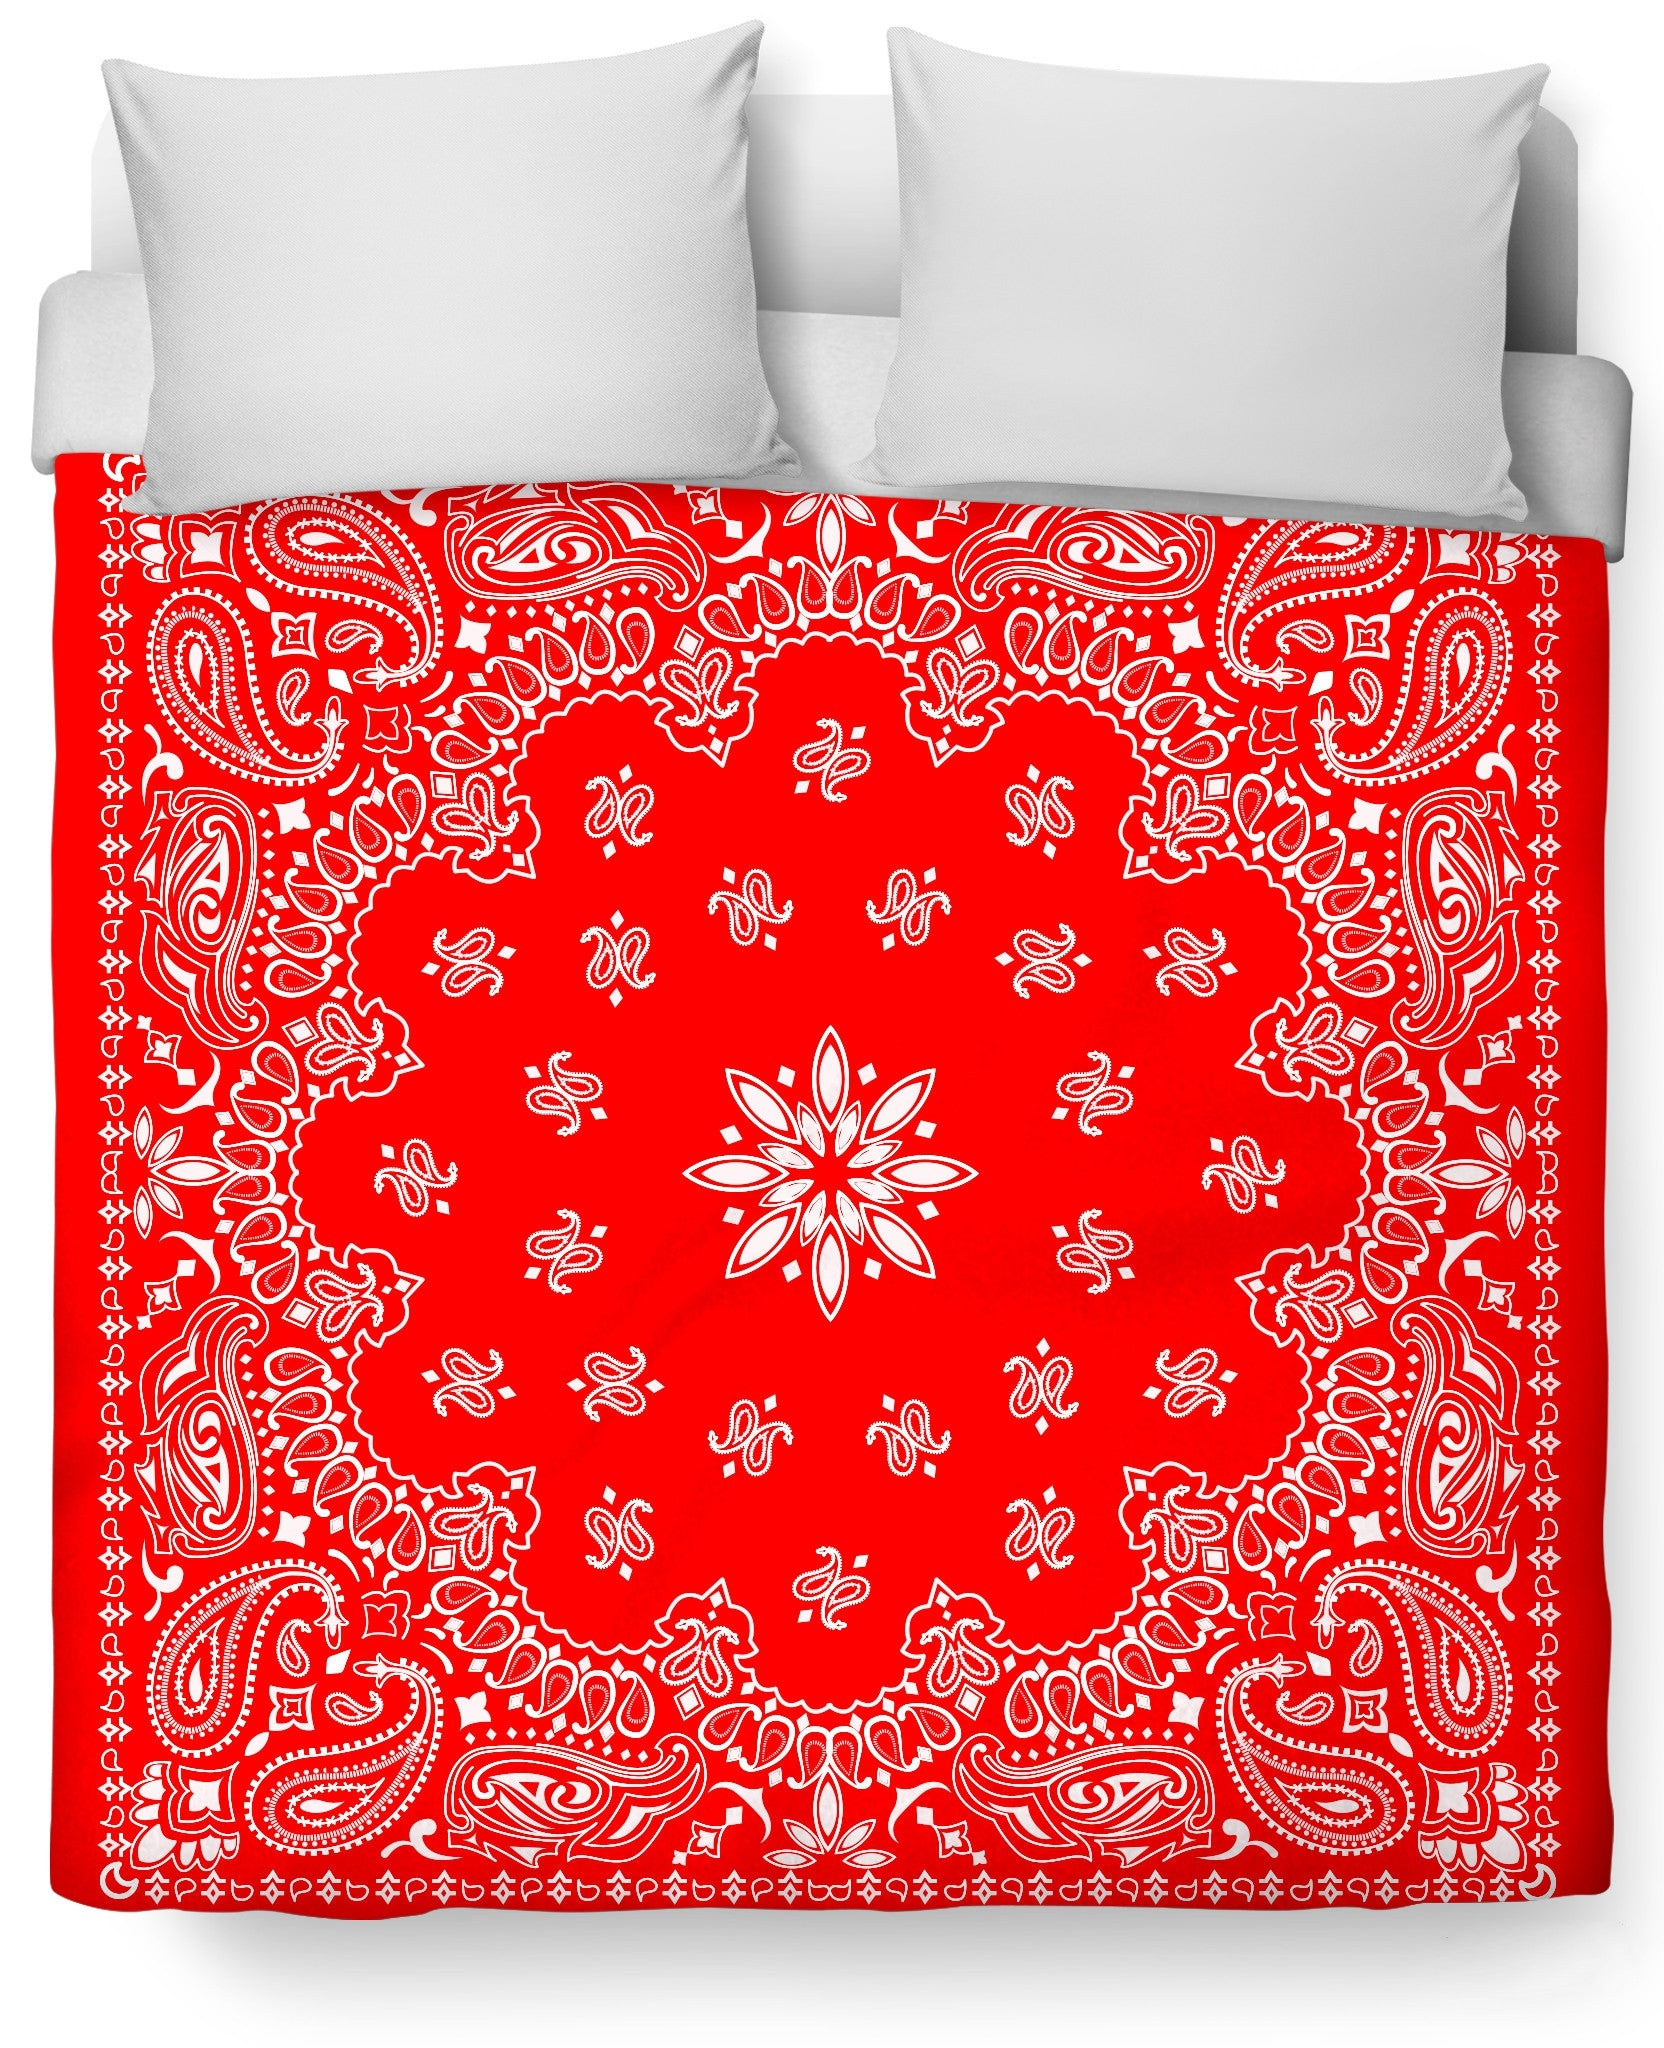 Red Bandana Duvet Cover